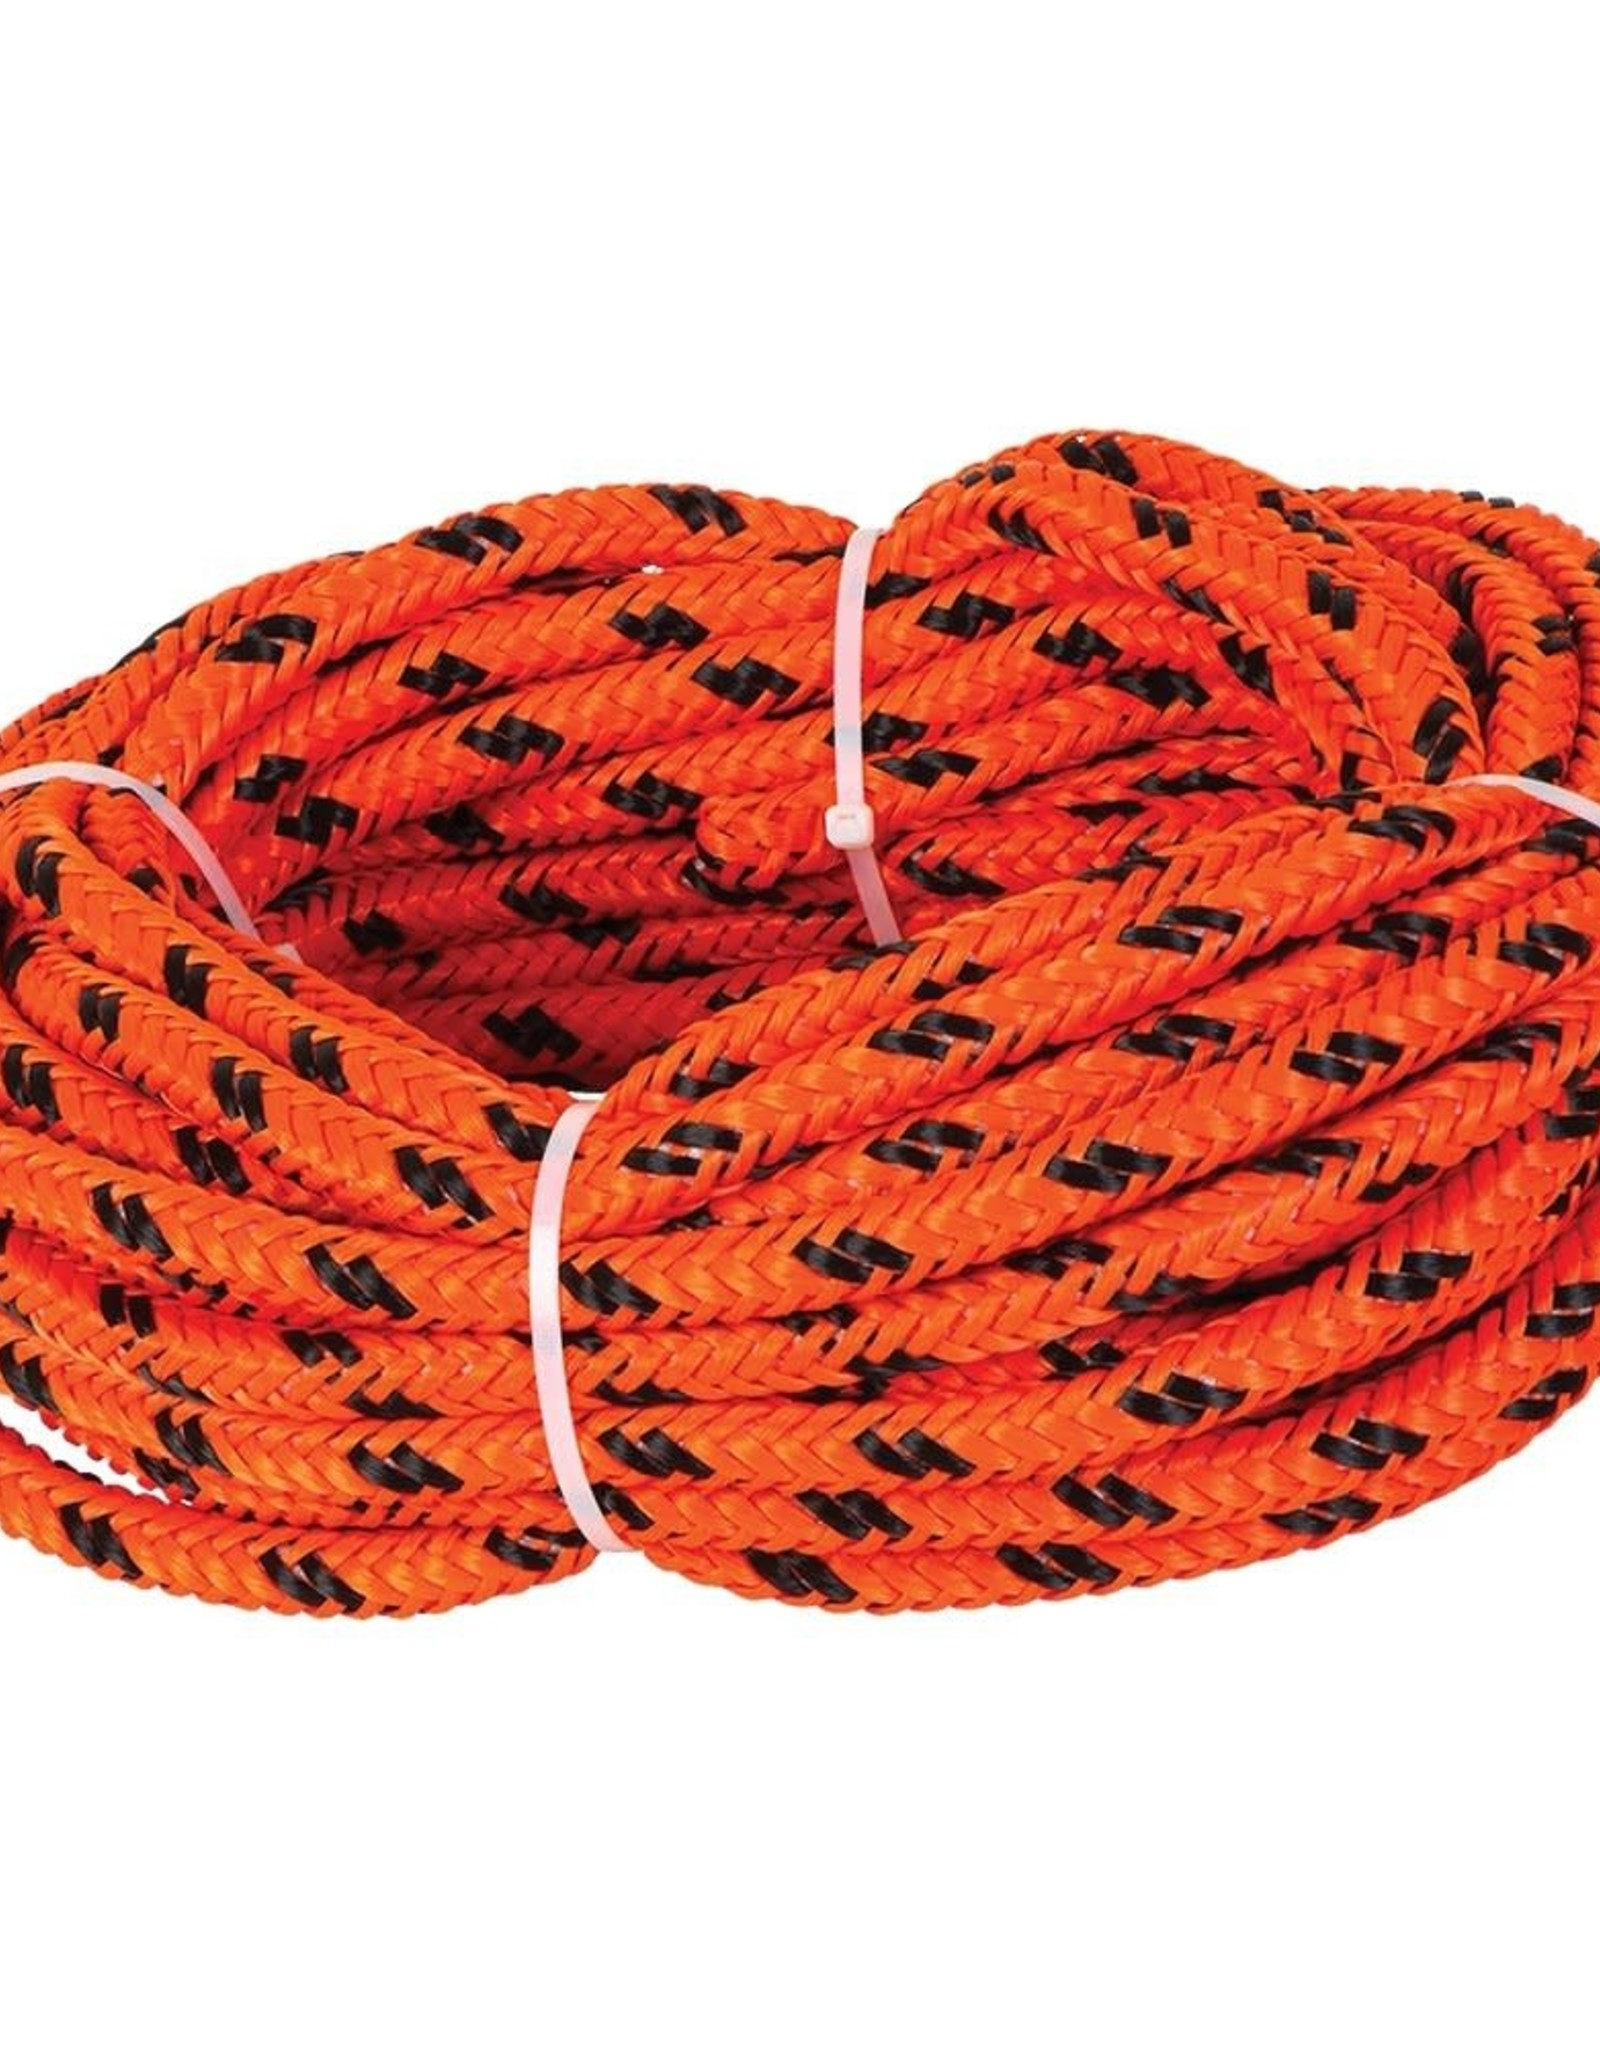 O'Brien - FLOATING TUBE ROPE  - 4 PERSON